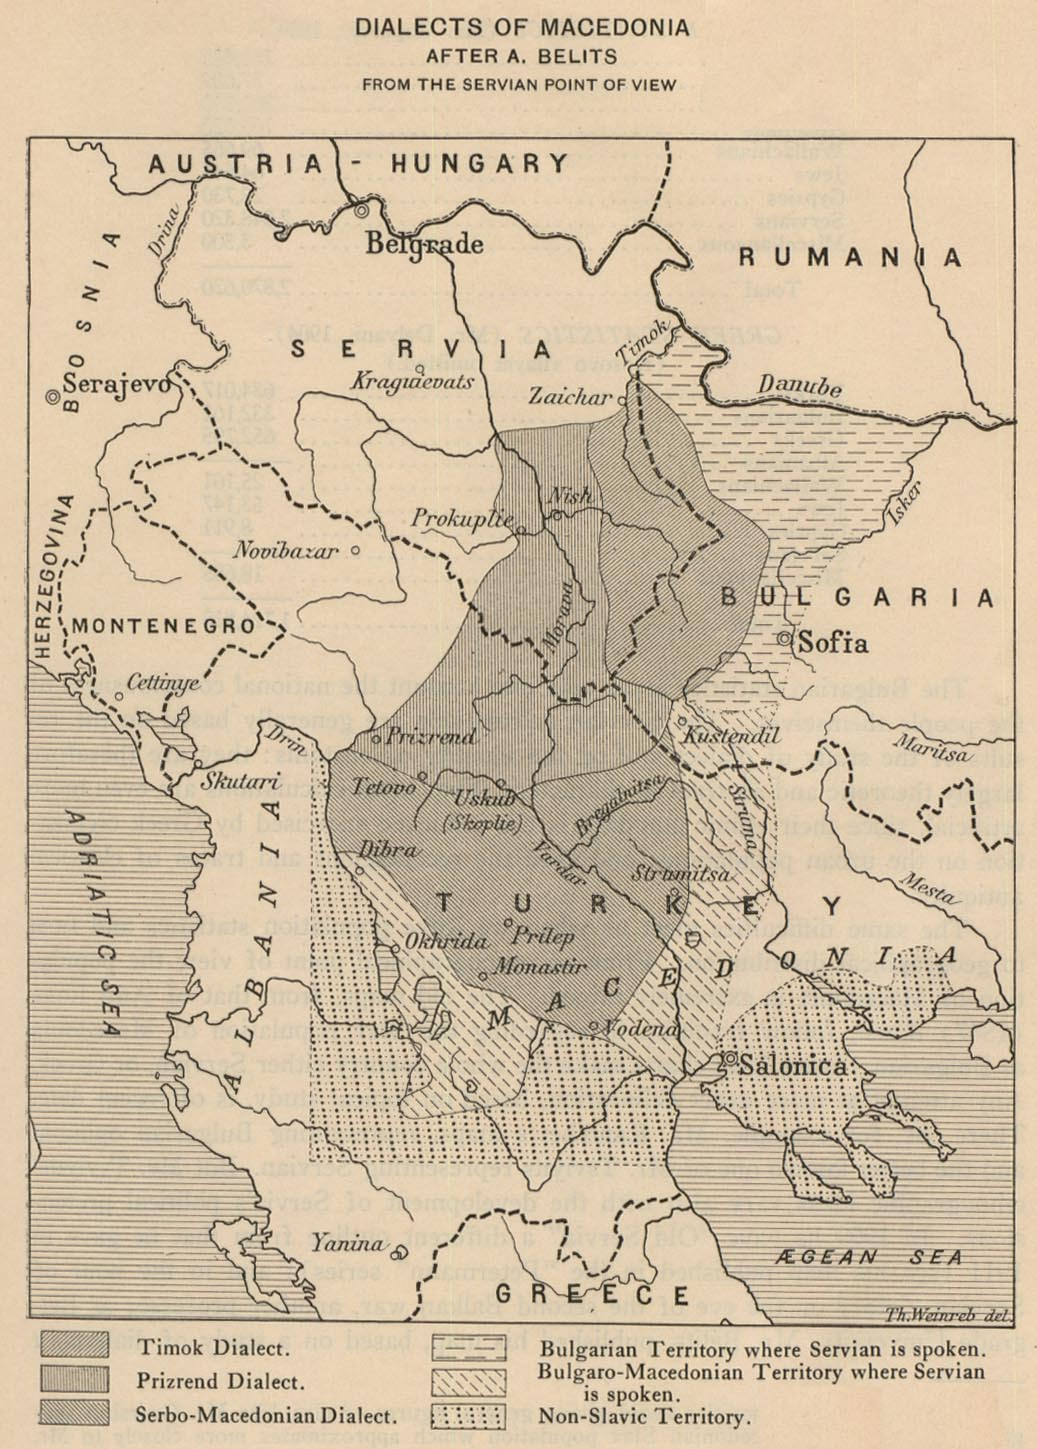 Map of Macedonia - Dialects 1914